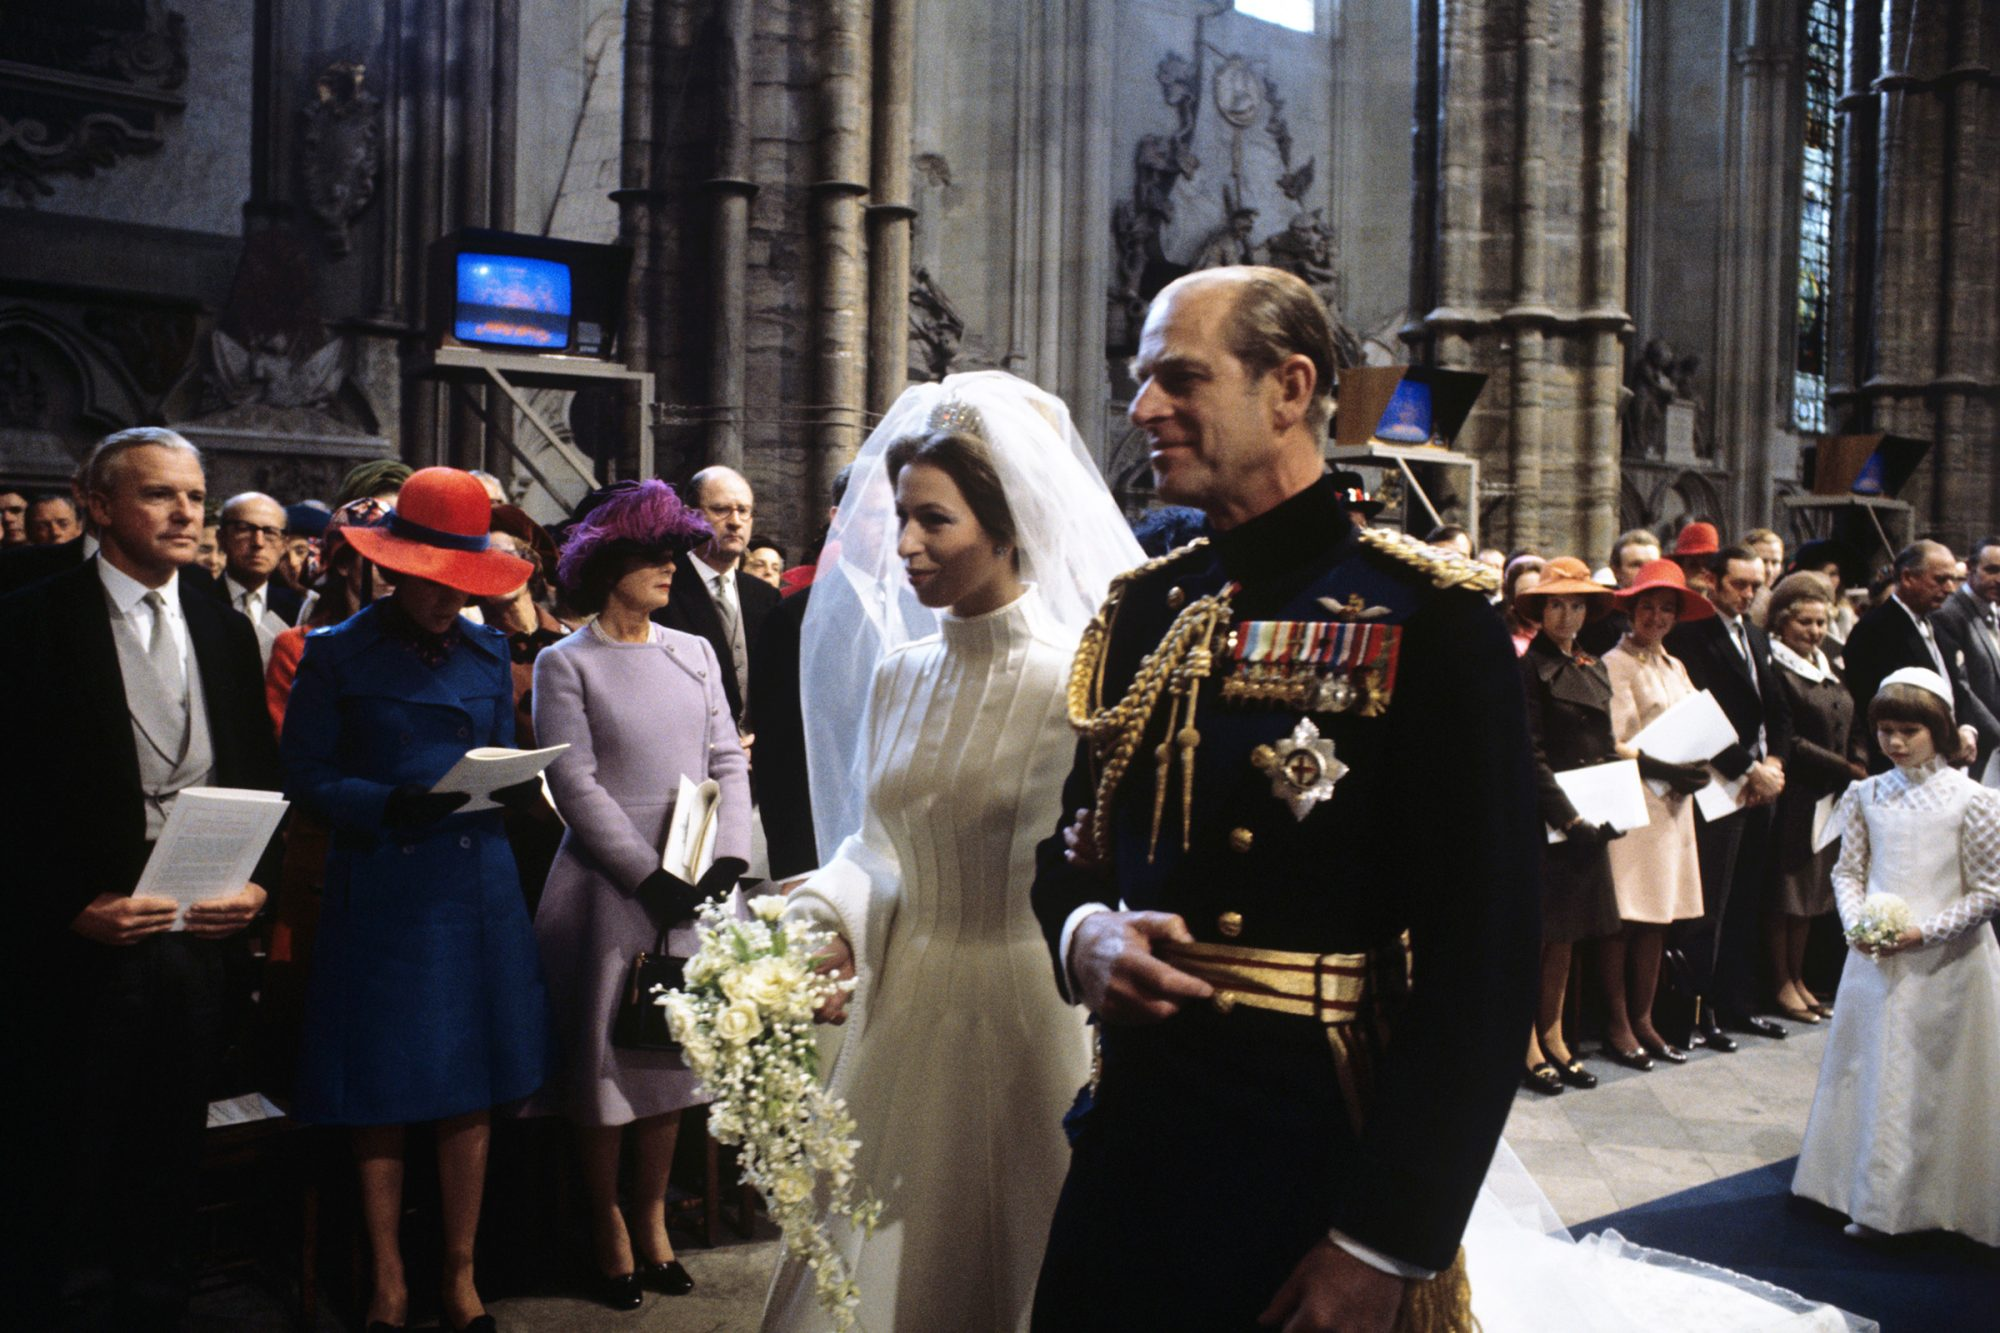 Princess Anne and her father, Prince Philip, Duke of Edinburgh, walk up the aisle during the wedding ceremony in Westminster Abbey